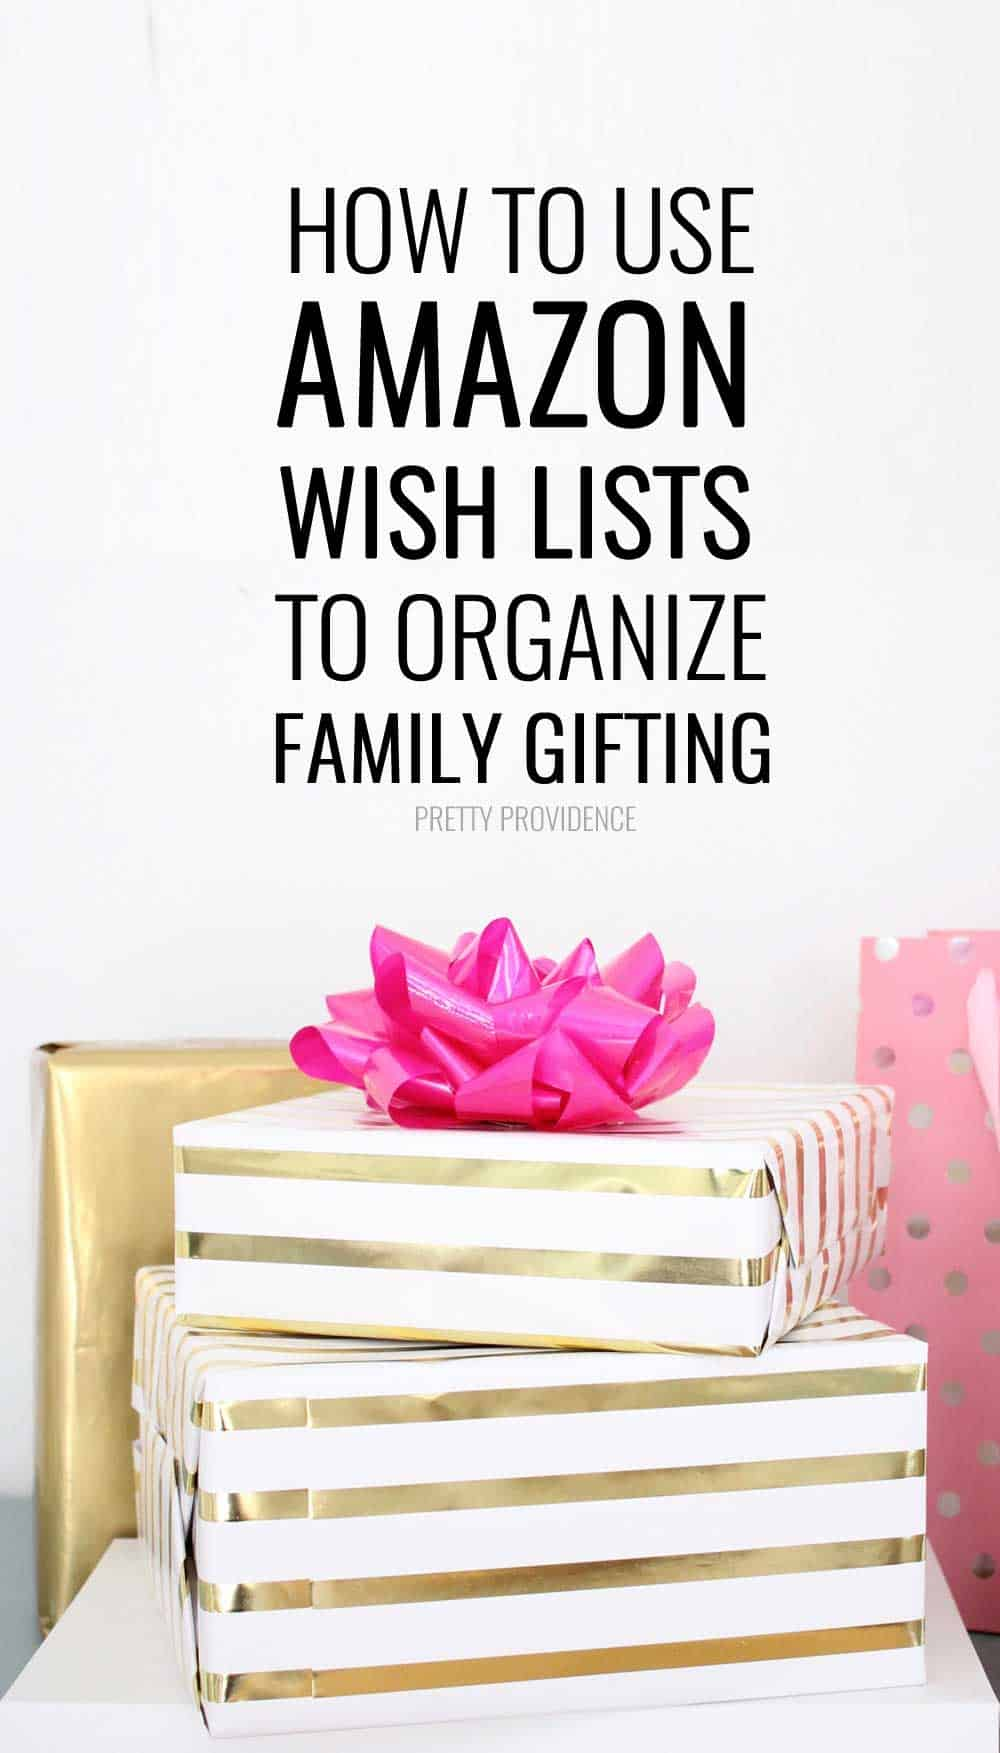 How to Use Amazon Wish Lists for Gifting - Pretty Providence